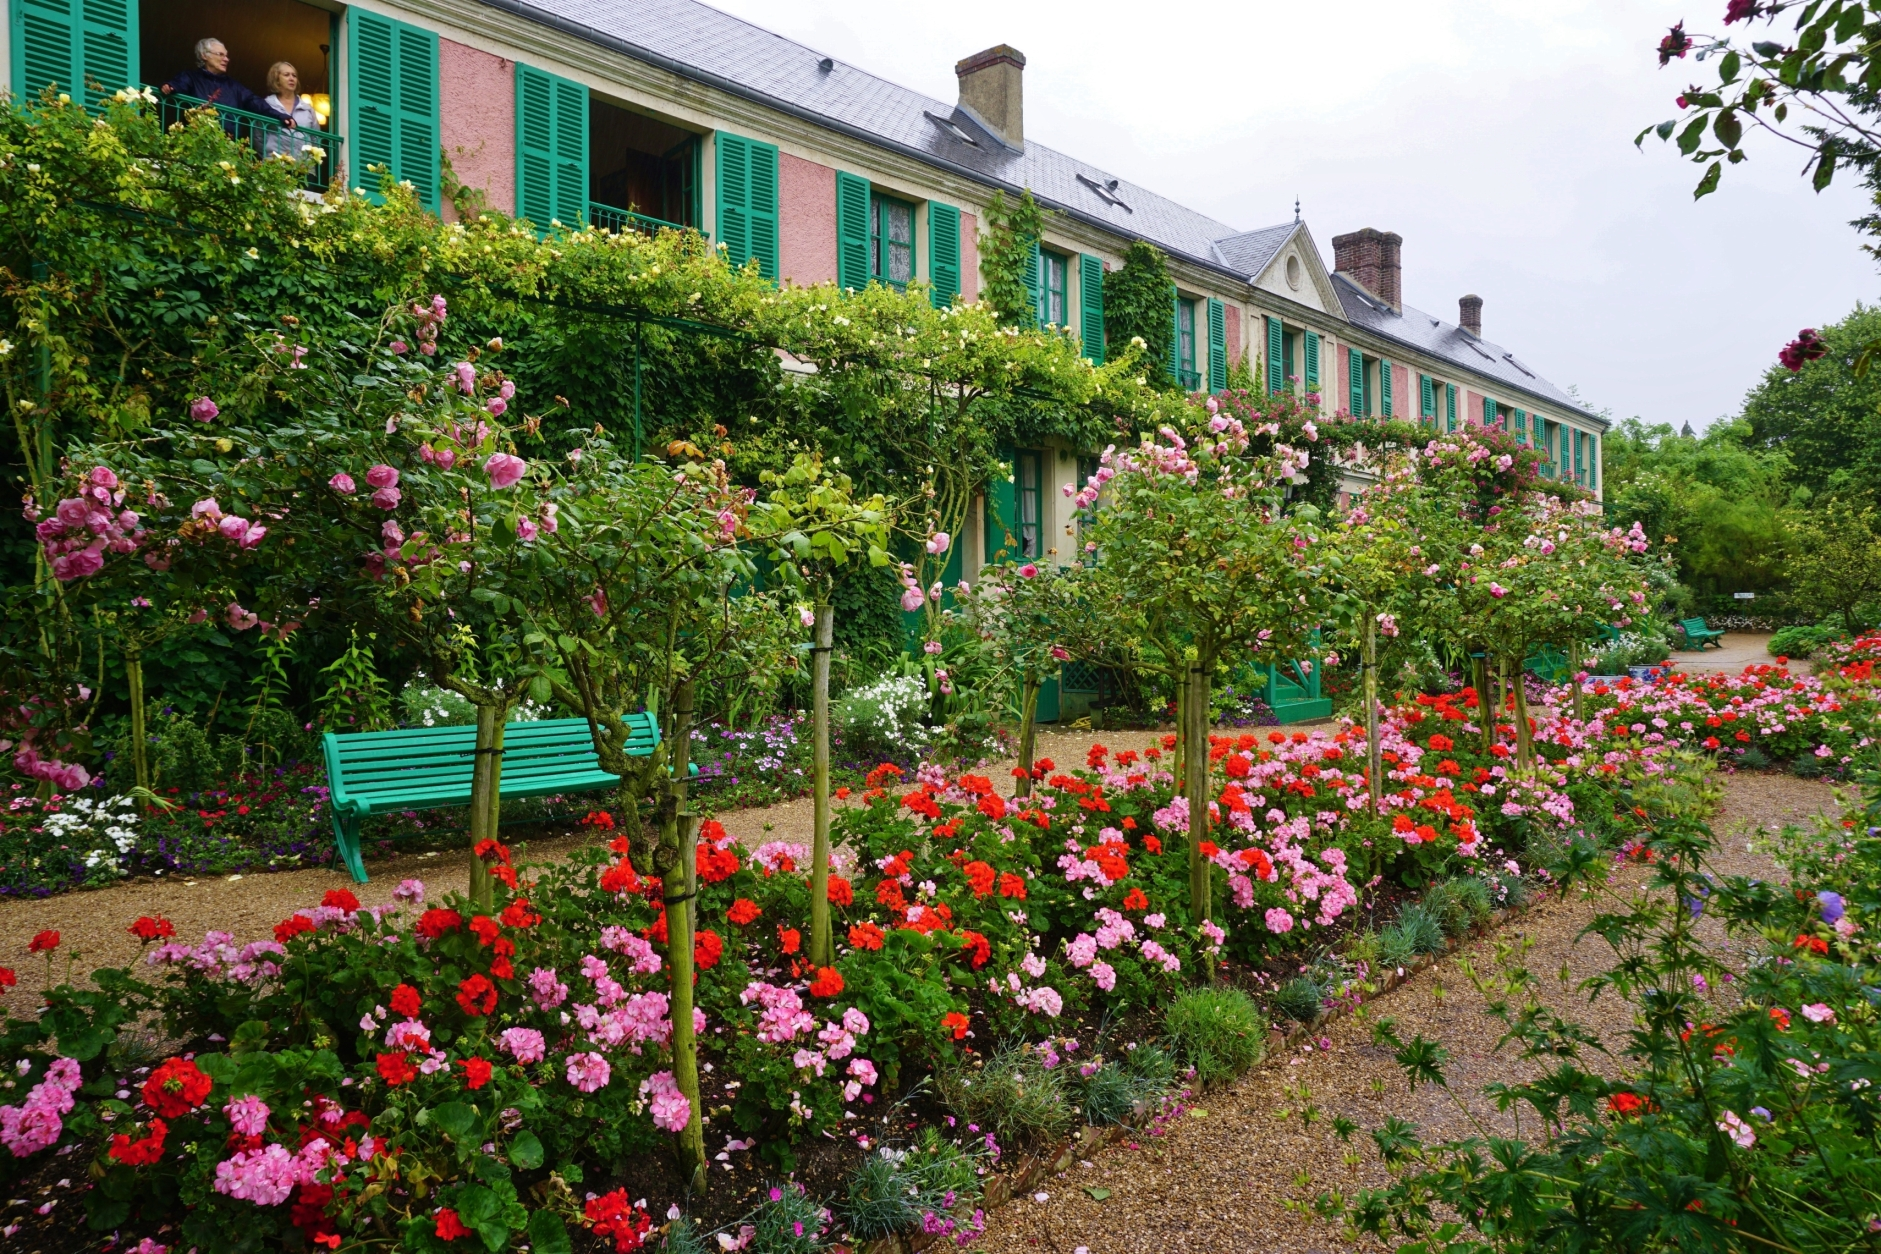 Maison et Jardins de Claude Monet | Giverny, France Giverny - Lonely ...